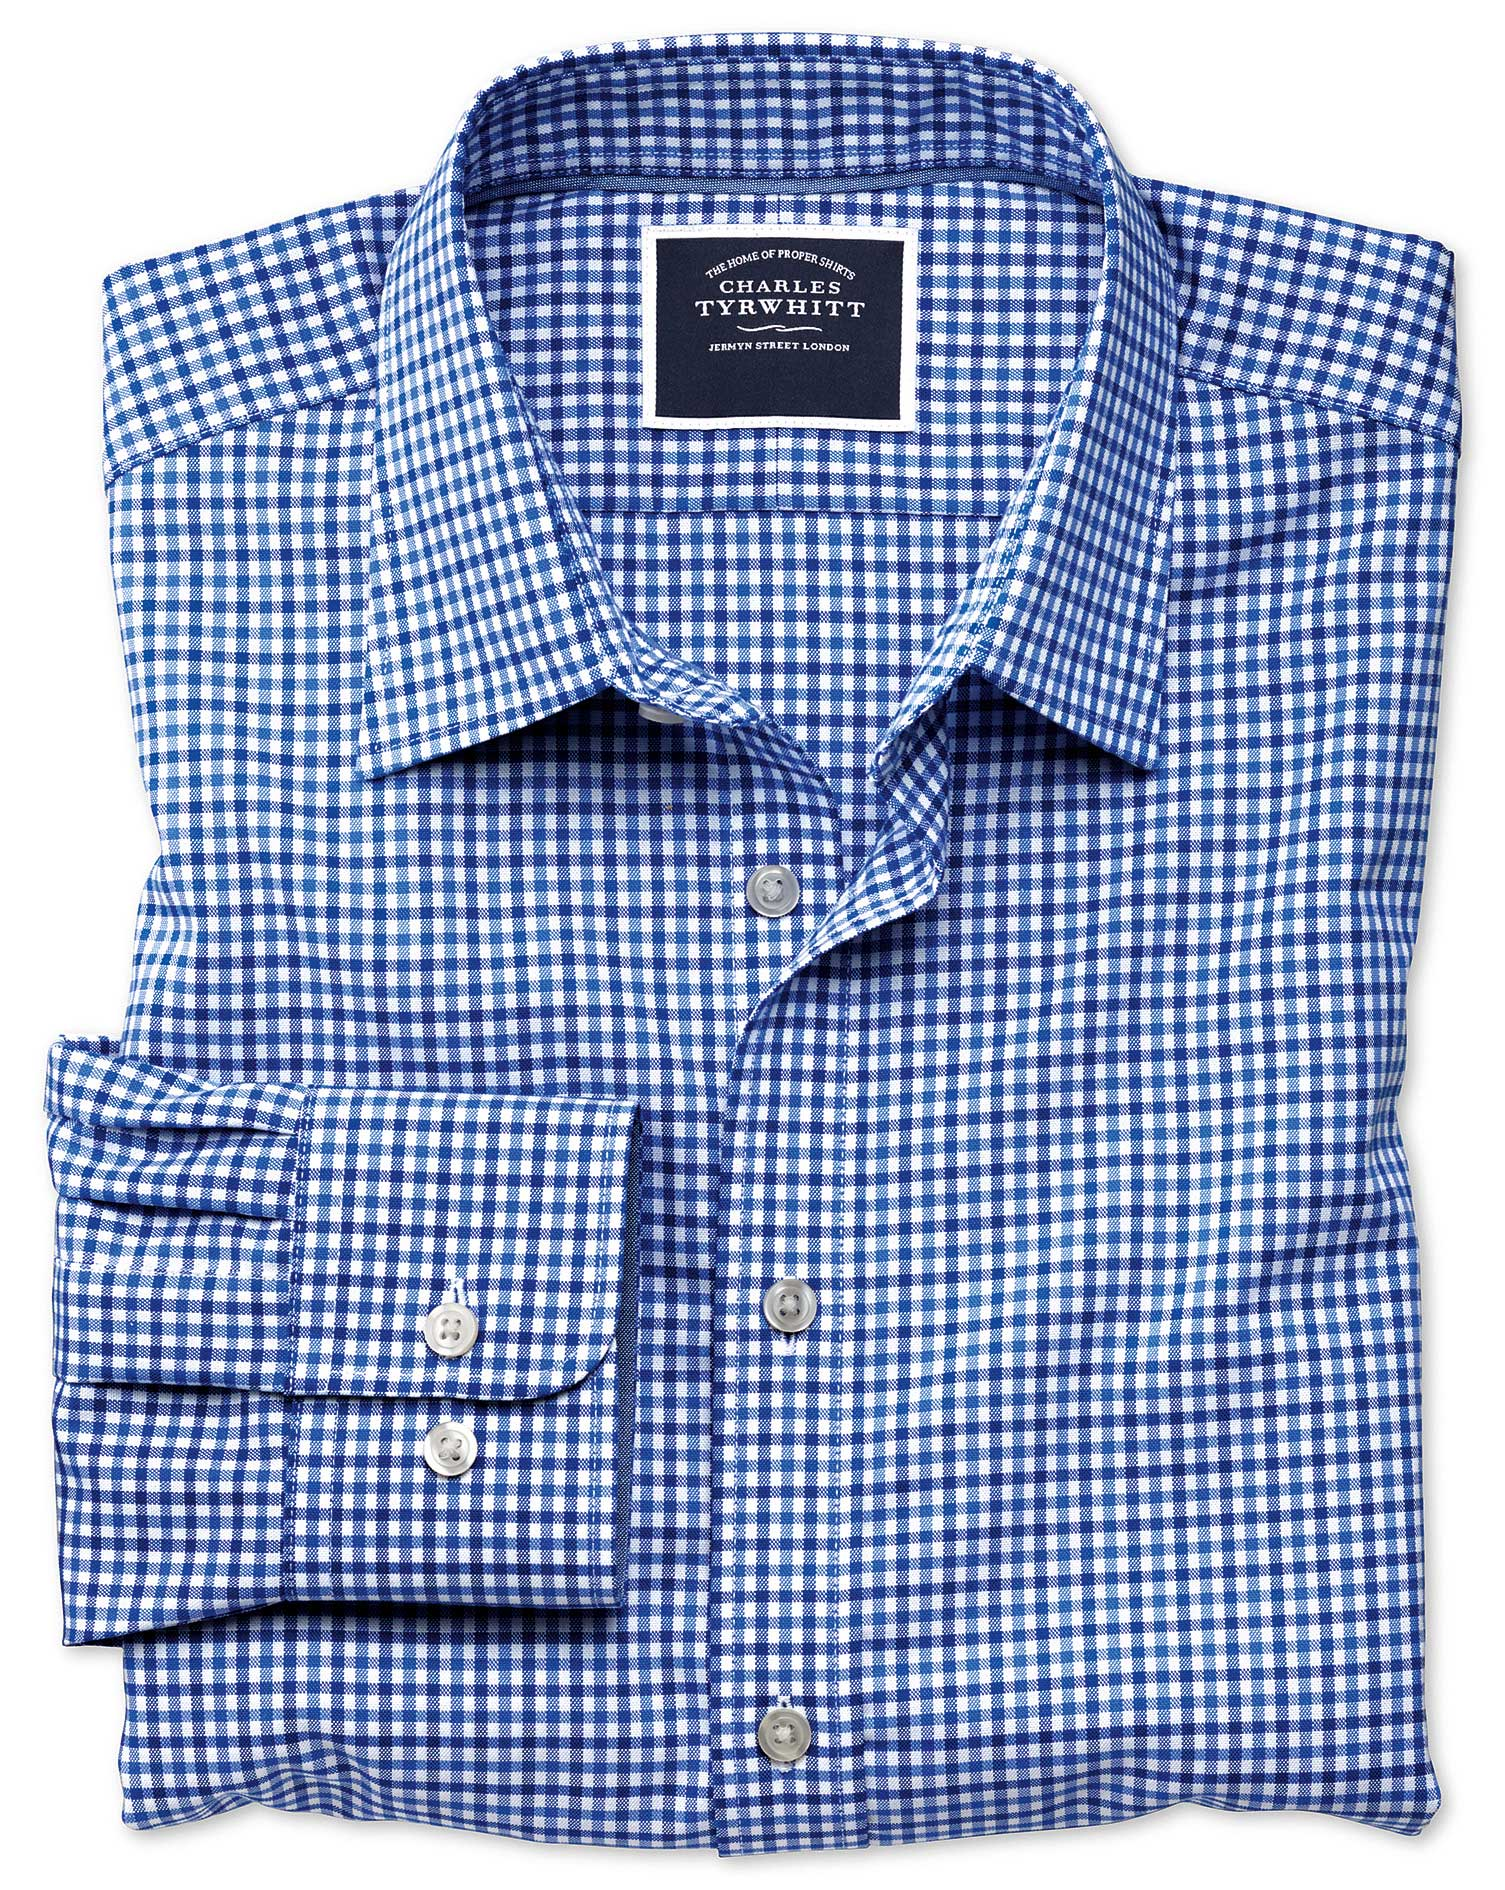 Classic Fit Non-Iron Sky and Blue Gingham Oxford Cotton Shirt Single Cuff Size XXXL by Charles Tyrwh